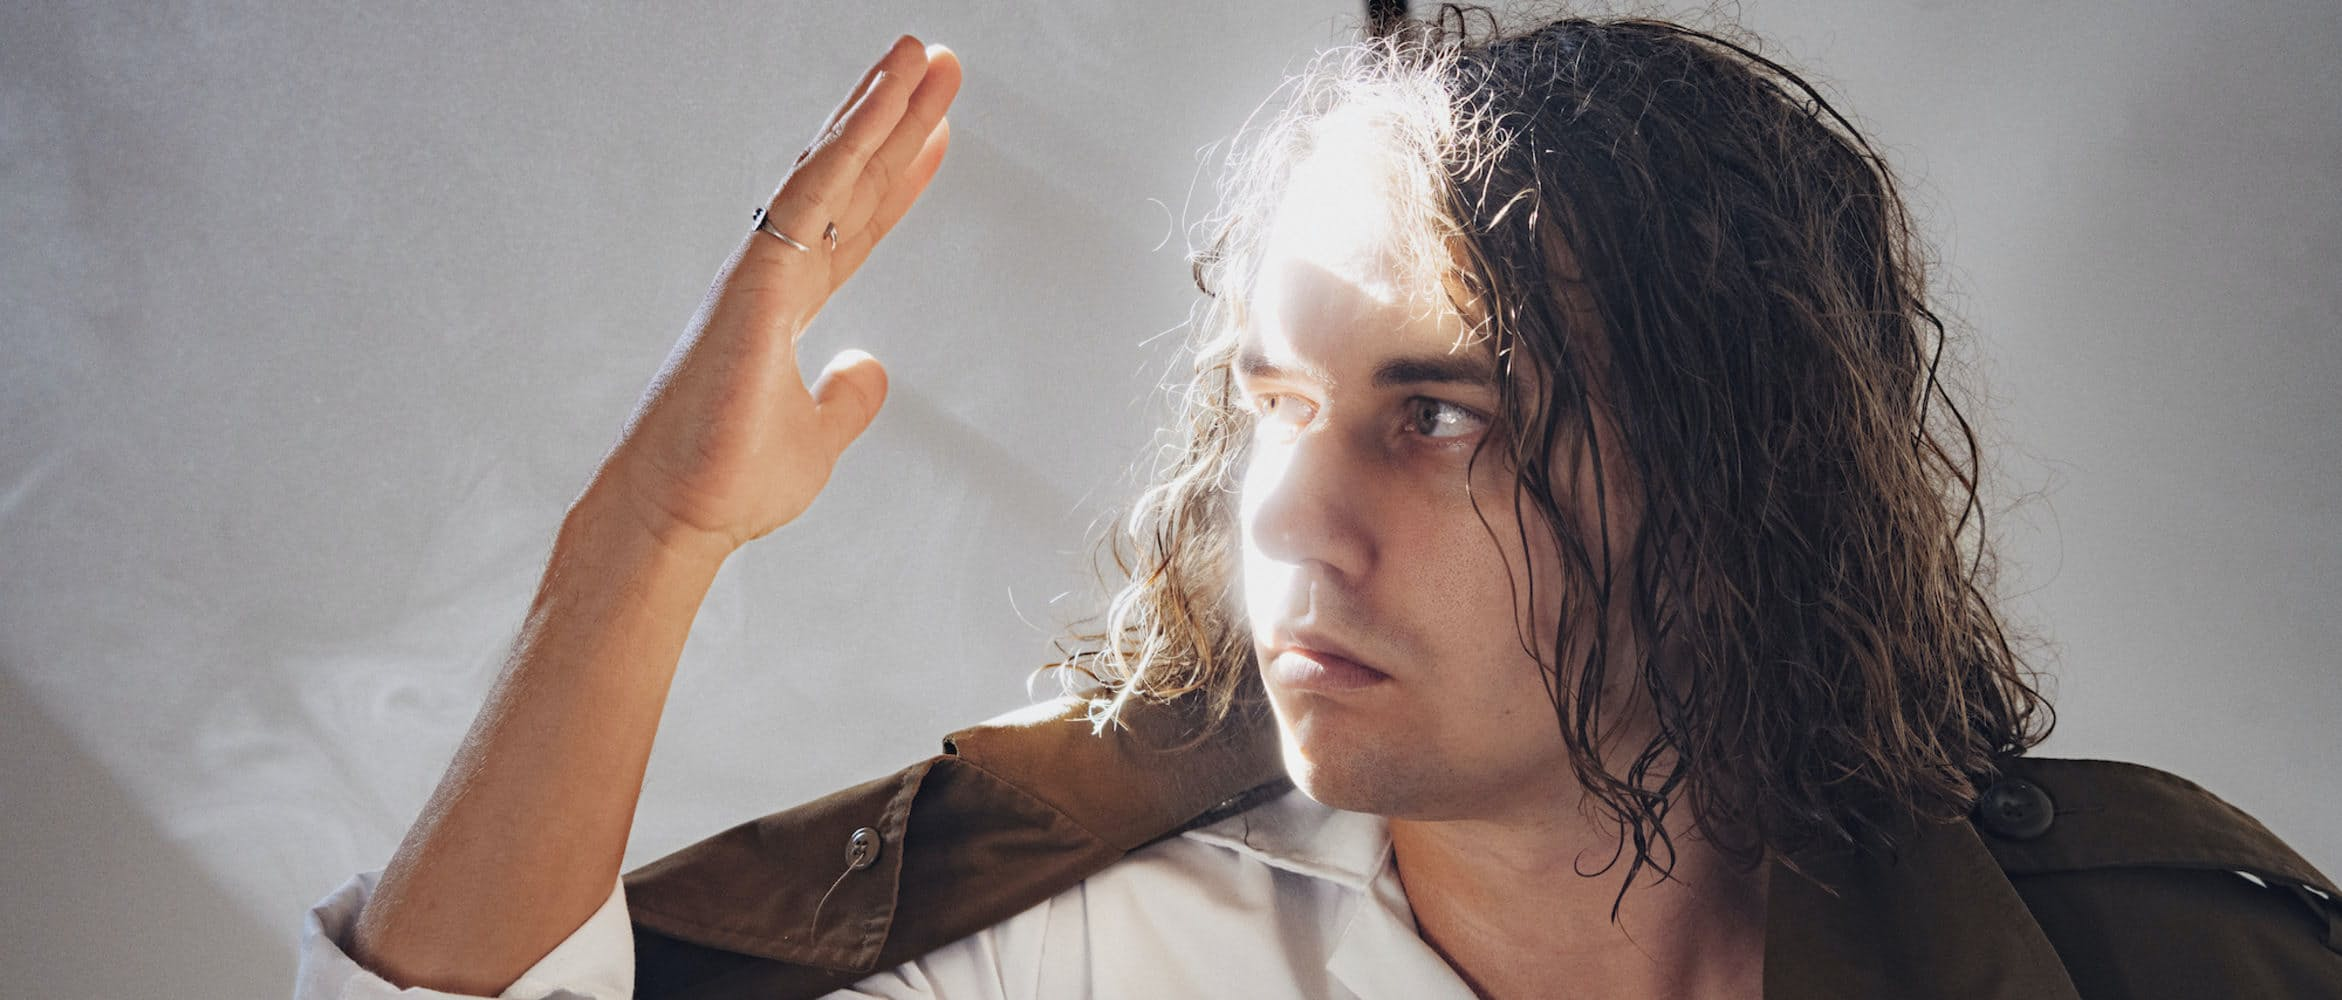 Featured 2x kevin morby banner.jpg?ixlib=rails 2.1